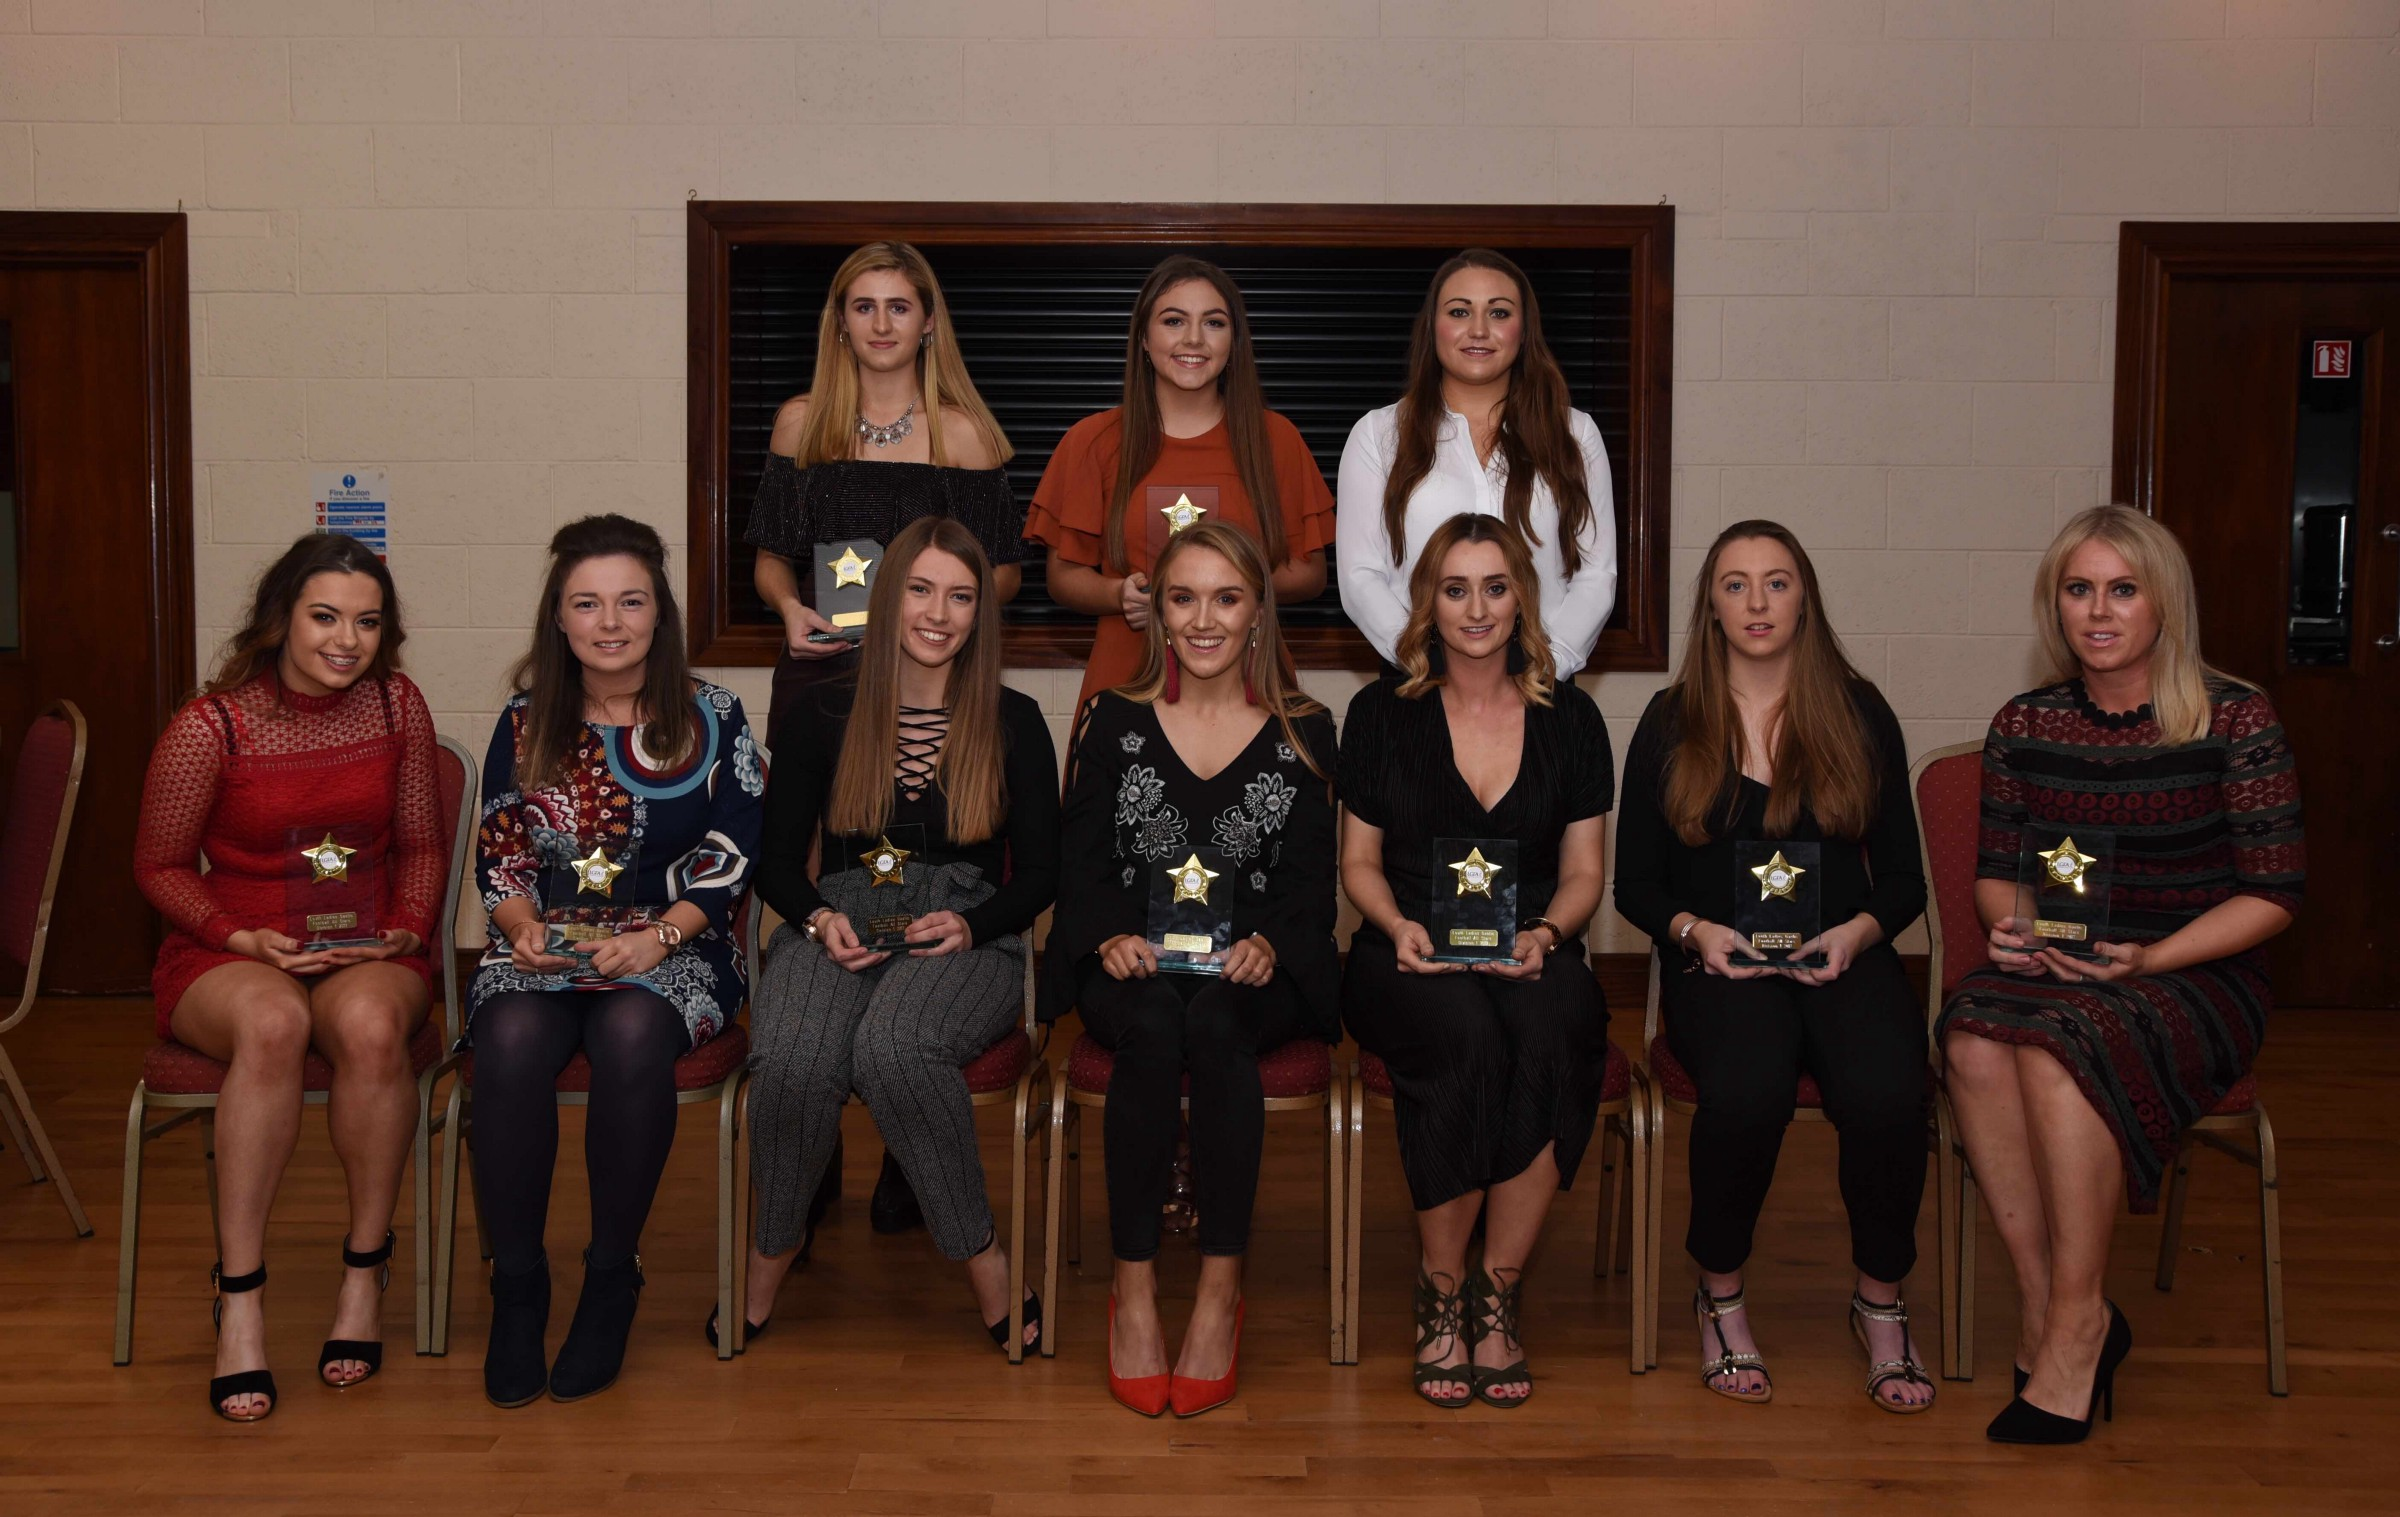 fef3561ad5c6ed The Louth Ladies Division One All Stars 2017